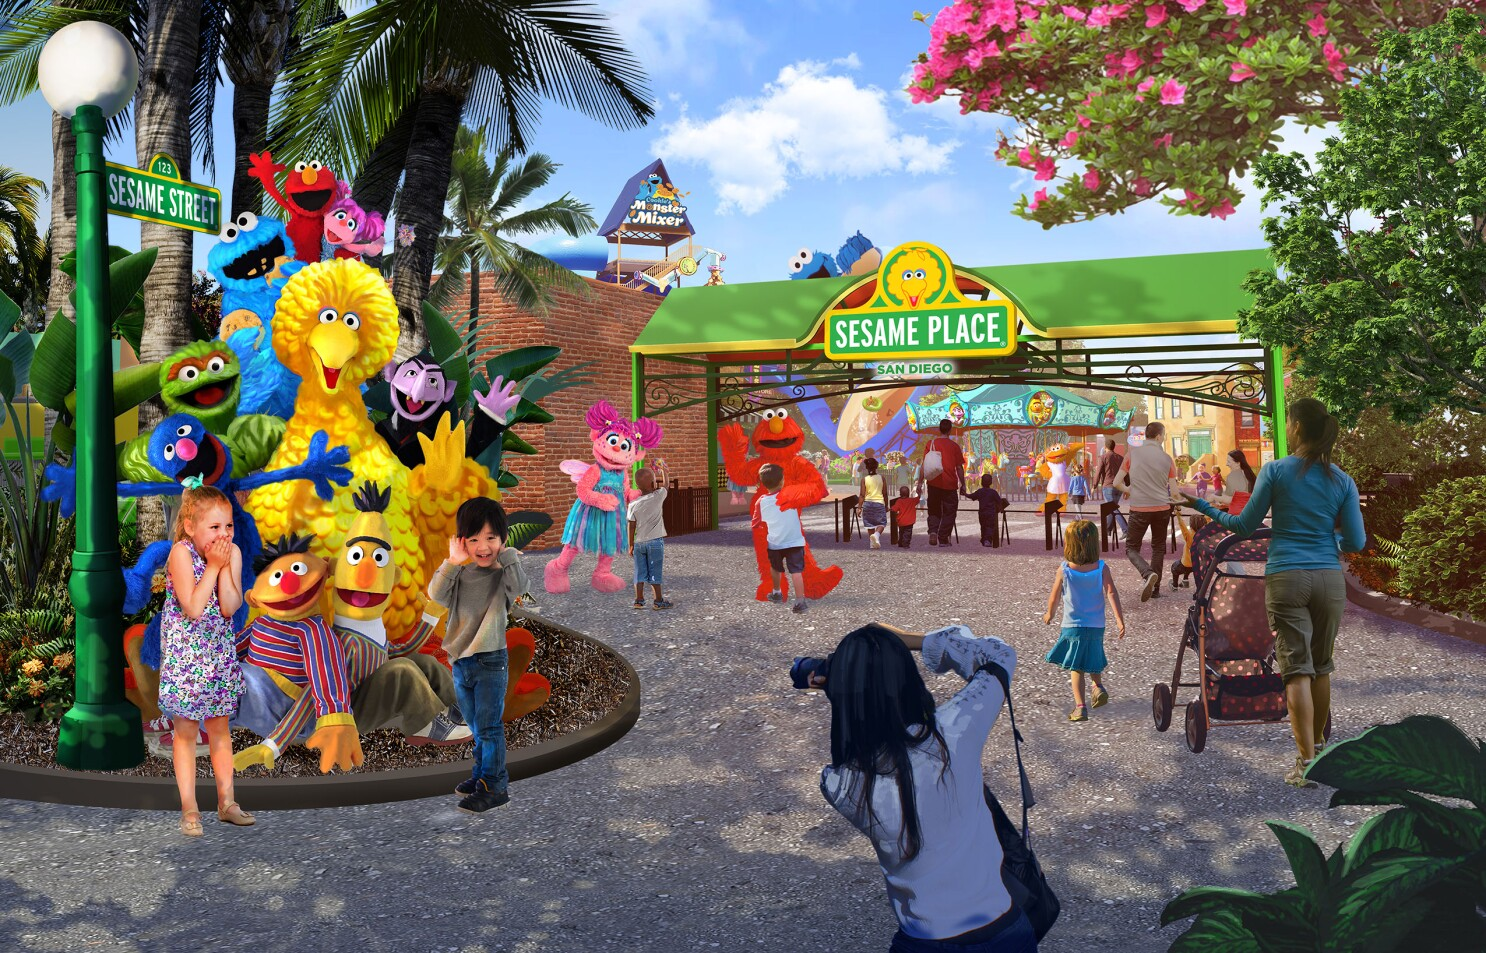 SeaWorld plans a new San Diego Sesame Place theme park